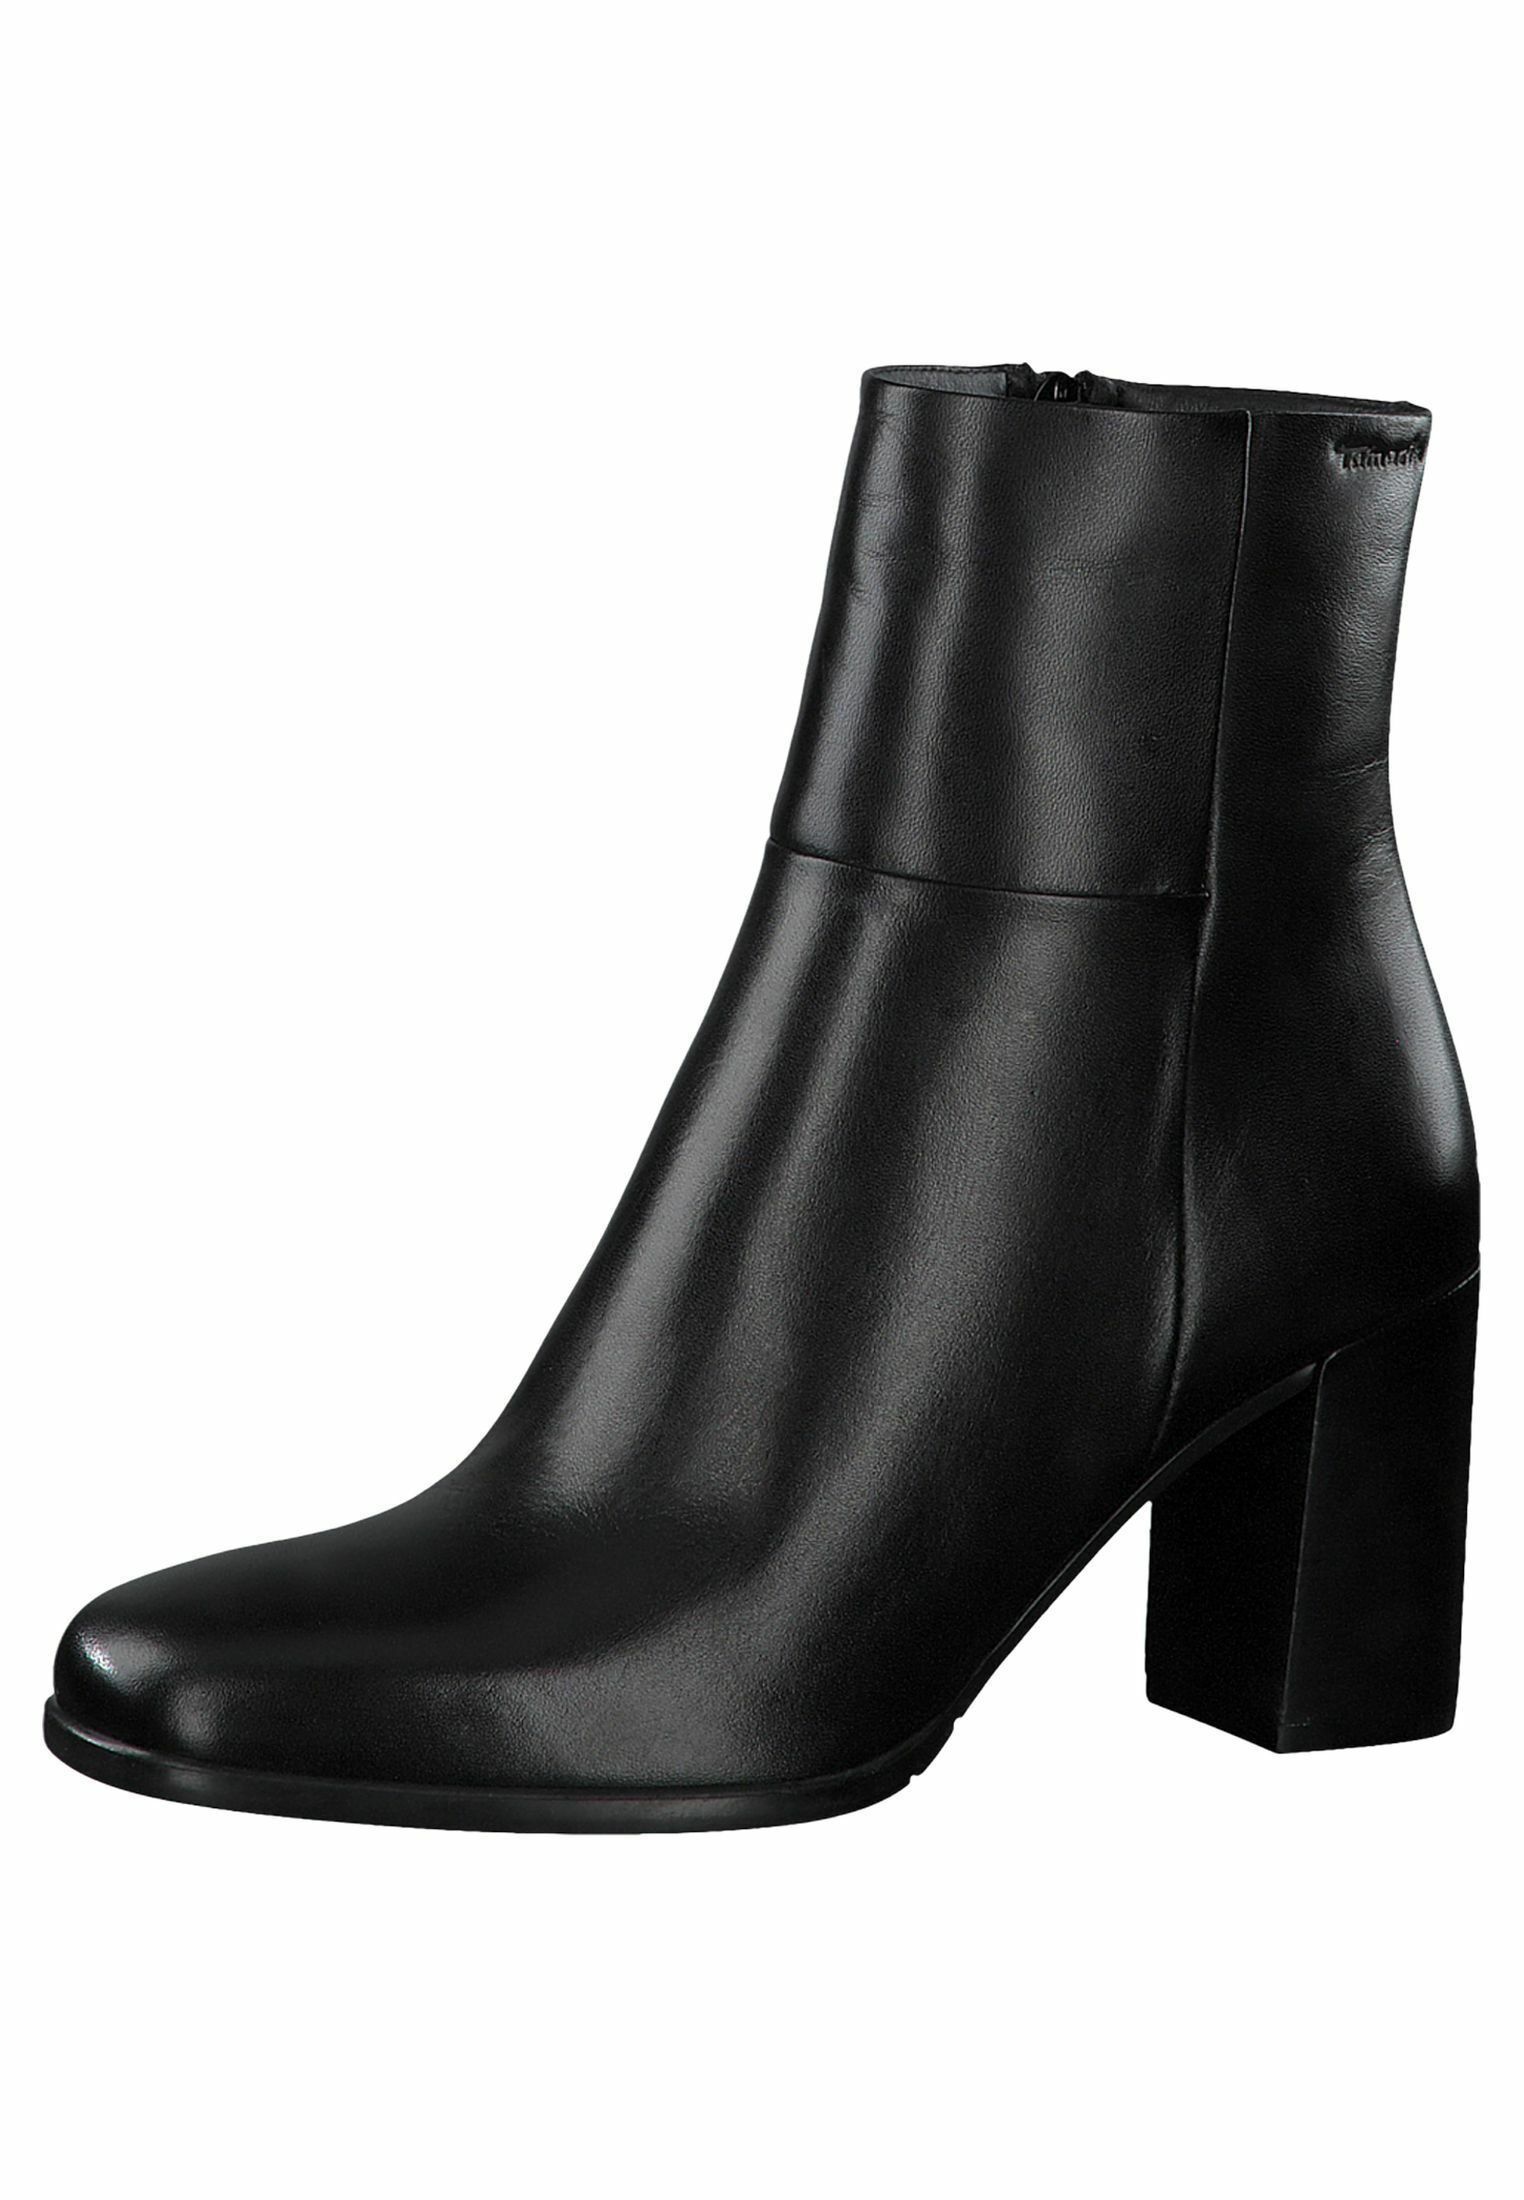 Tamaris STIEFELETTE Ankelboots black leather